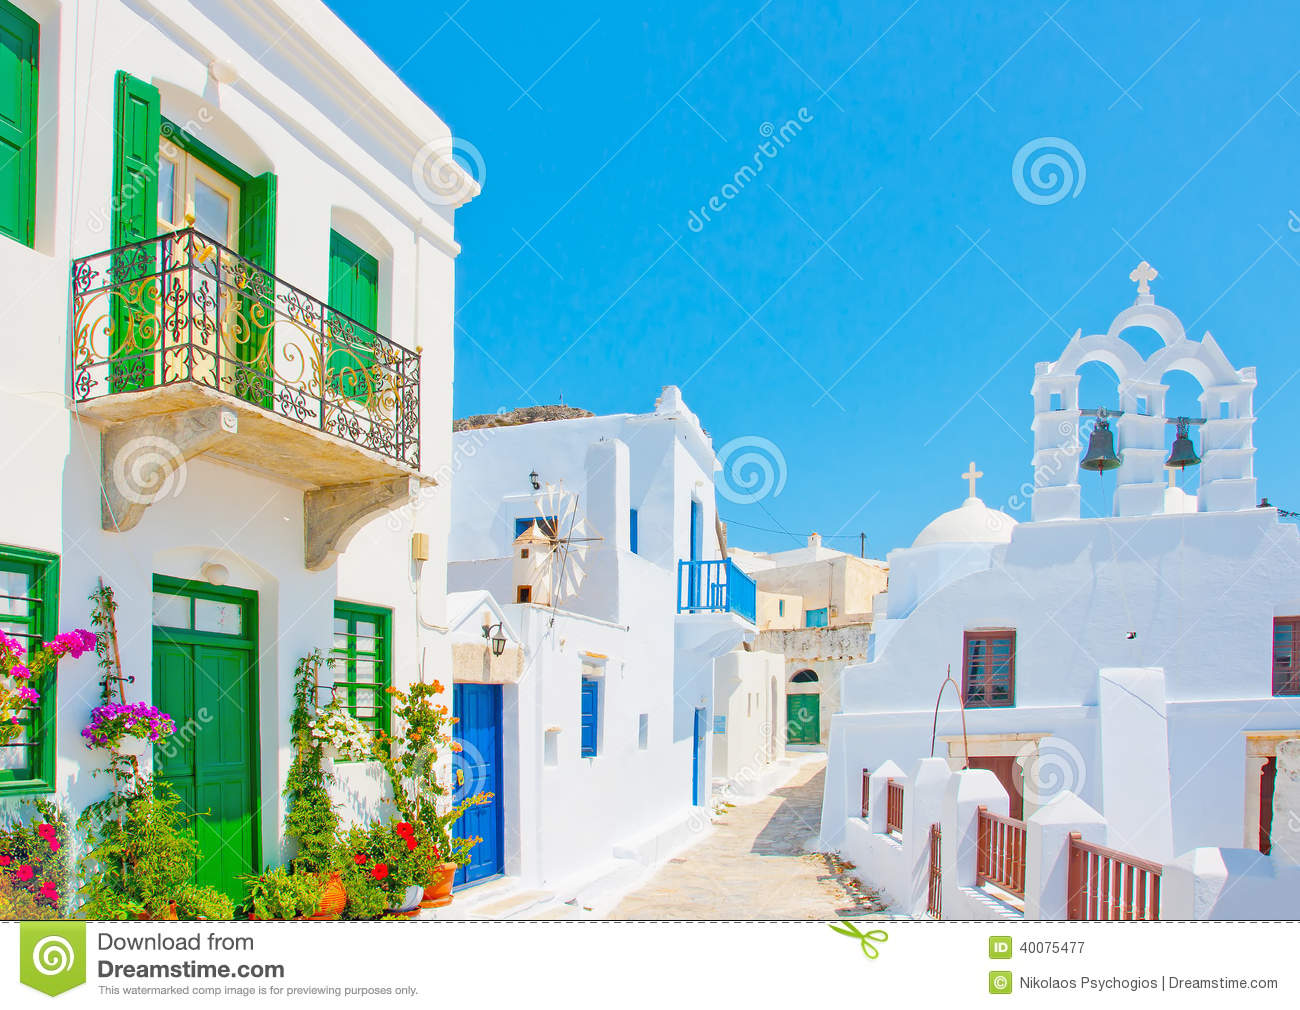 Old beautiful traditional house in chora the capital of amorgos island - The Typical Island Village Stock Photo Amorgos Beautiful Church Greece Island Old Road Traditional